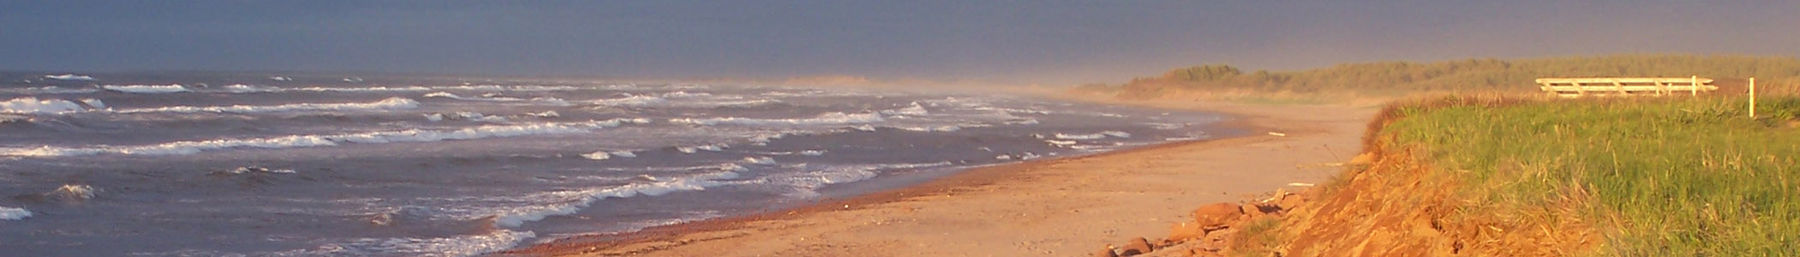 Stanhope Beach at Prince Edward Island National Park